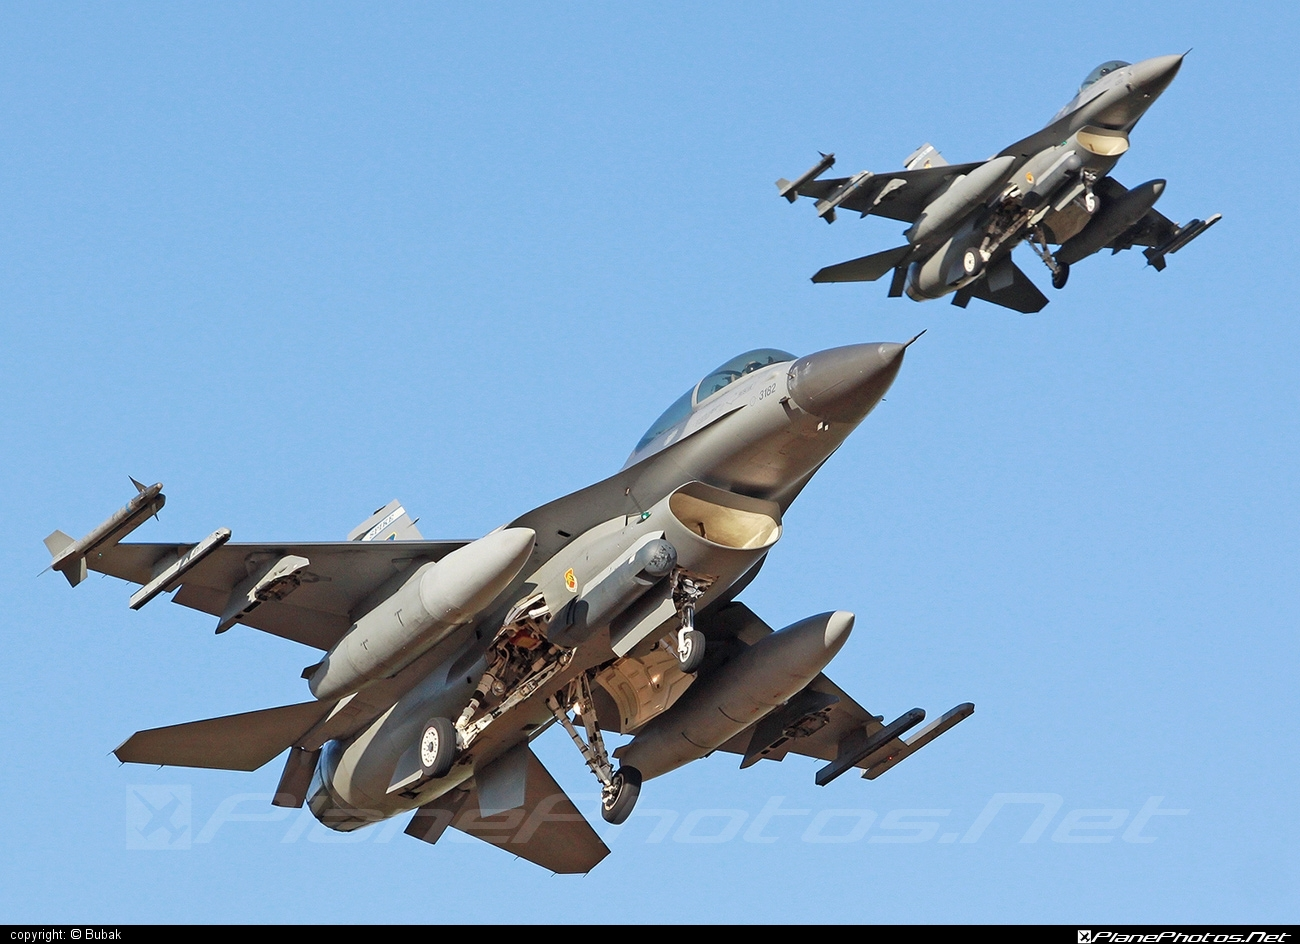 General Dynamics F-16D Fighting Falcon - 83-1182 operated by US Air Force (USAF) #f16 #f16d #fightingfalcon #generaldynamics #usaf #usairforce